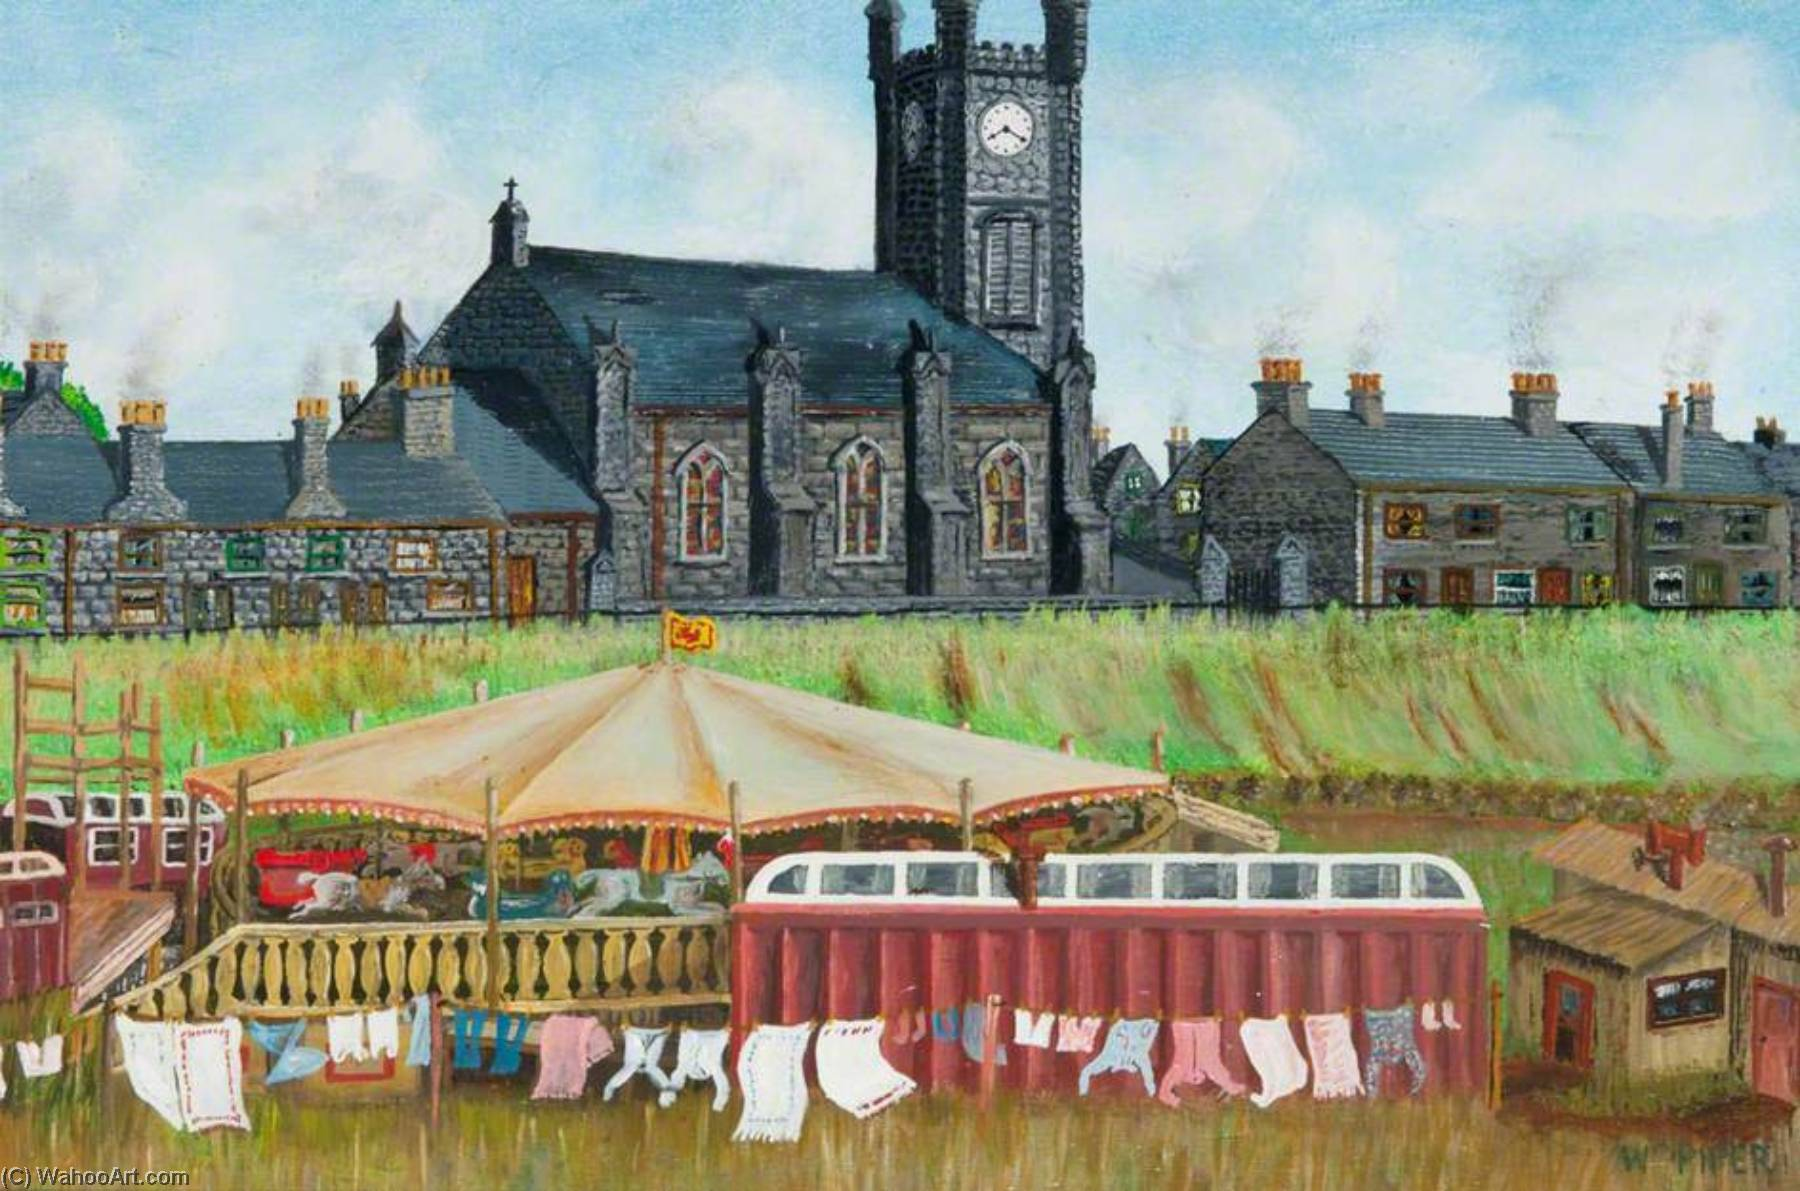 Circus and Shows on the Haugh, Backbrae Street and Parish Church, Kilsyth, 1950 by William Piper | Paintings Reproductions William Piper | ArtsDot.com